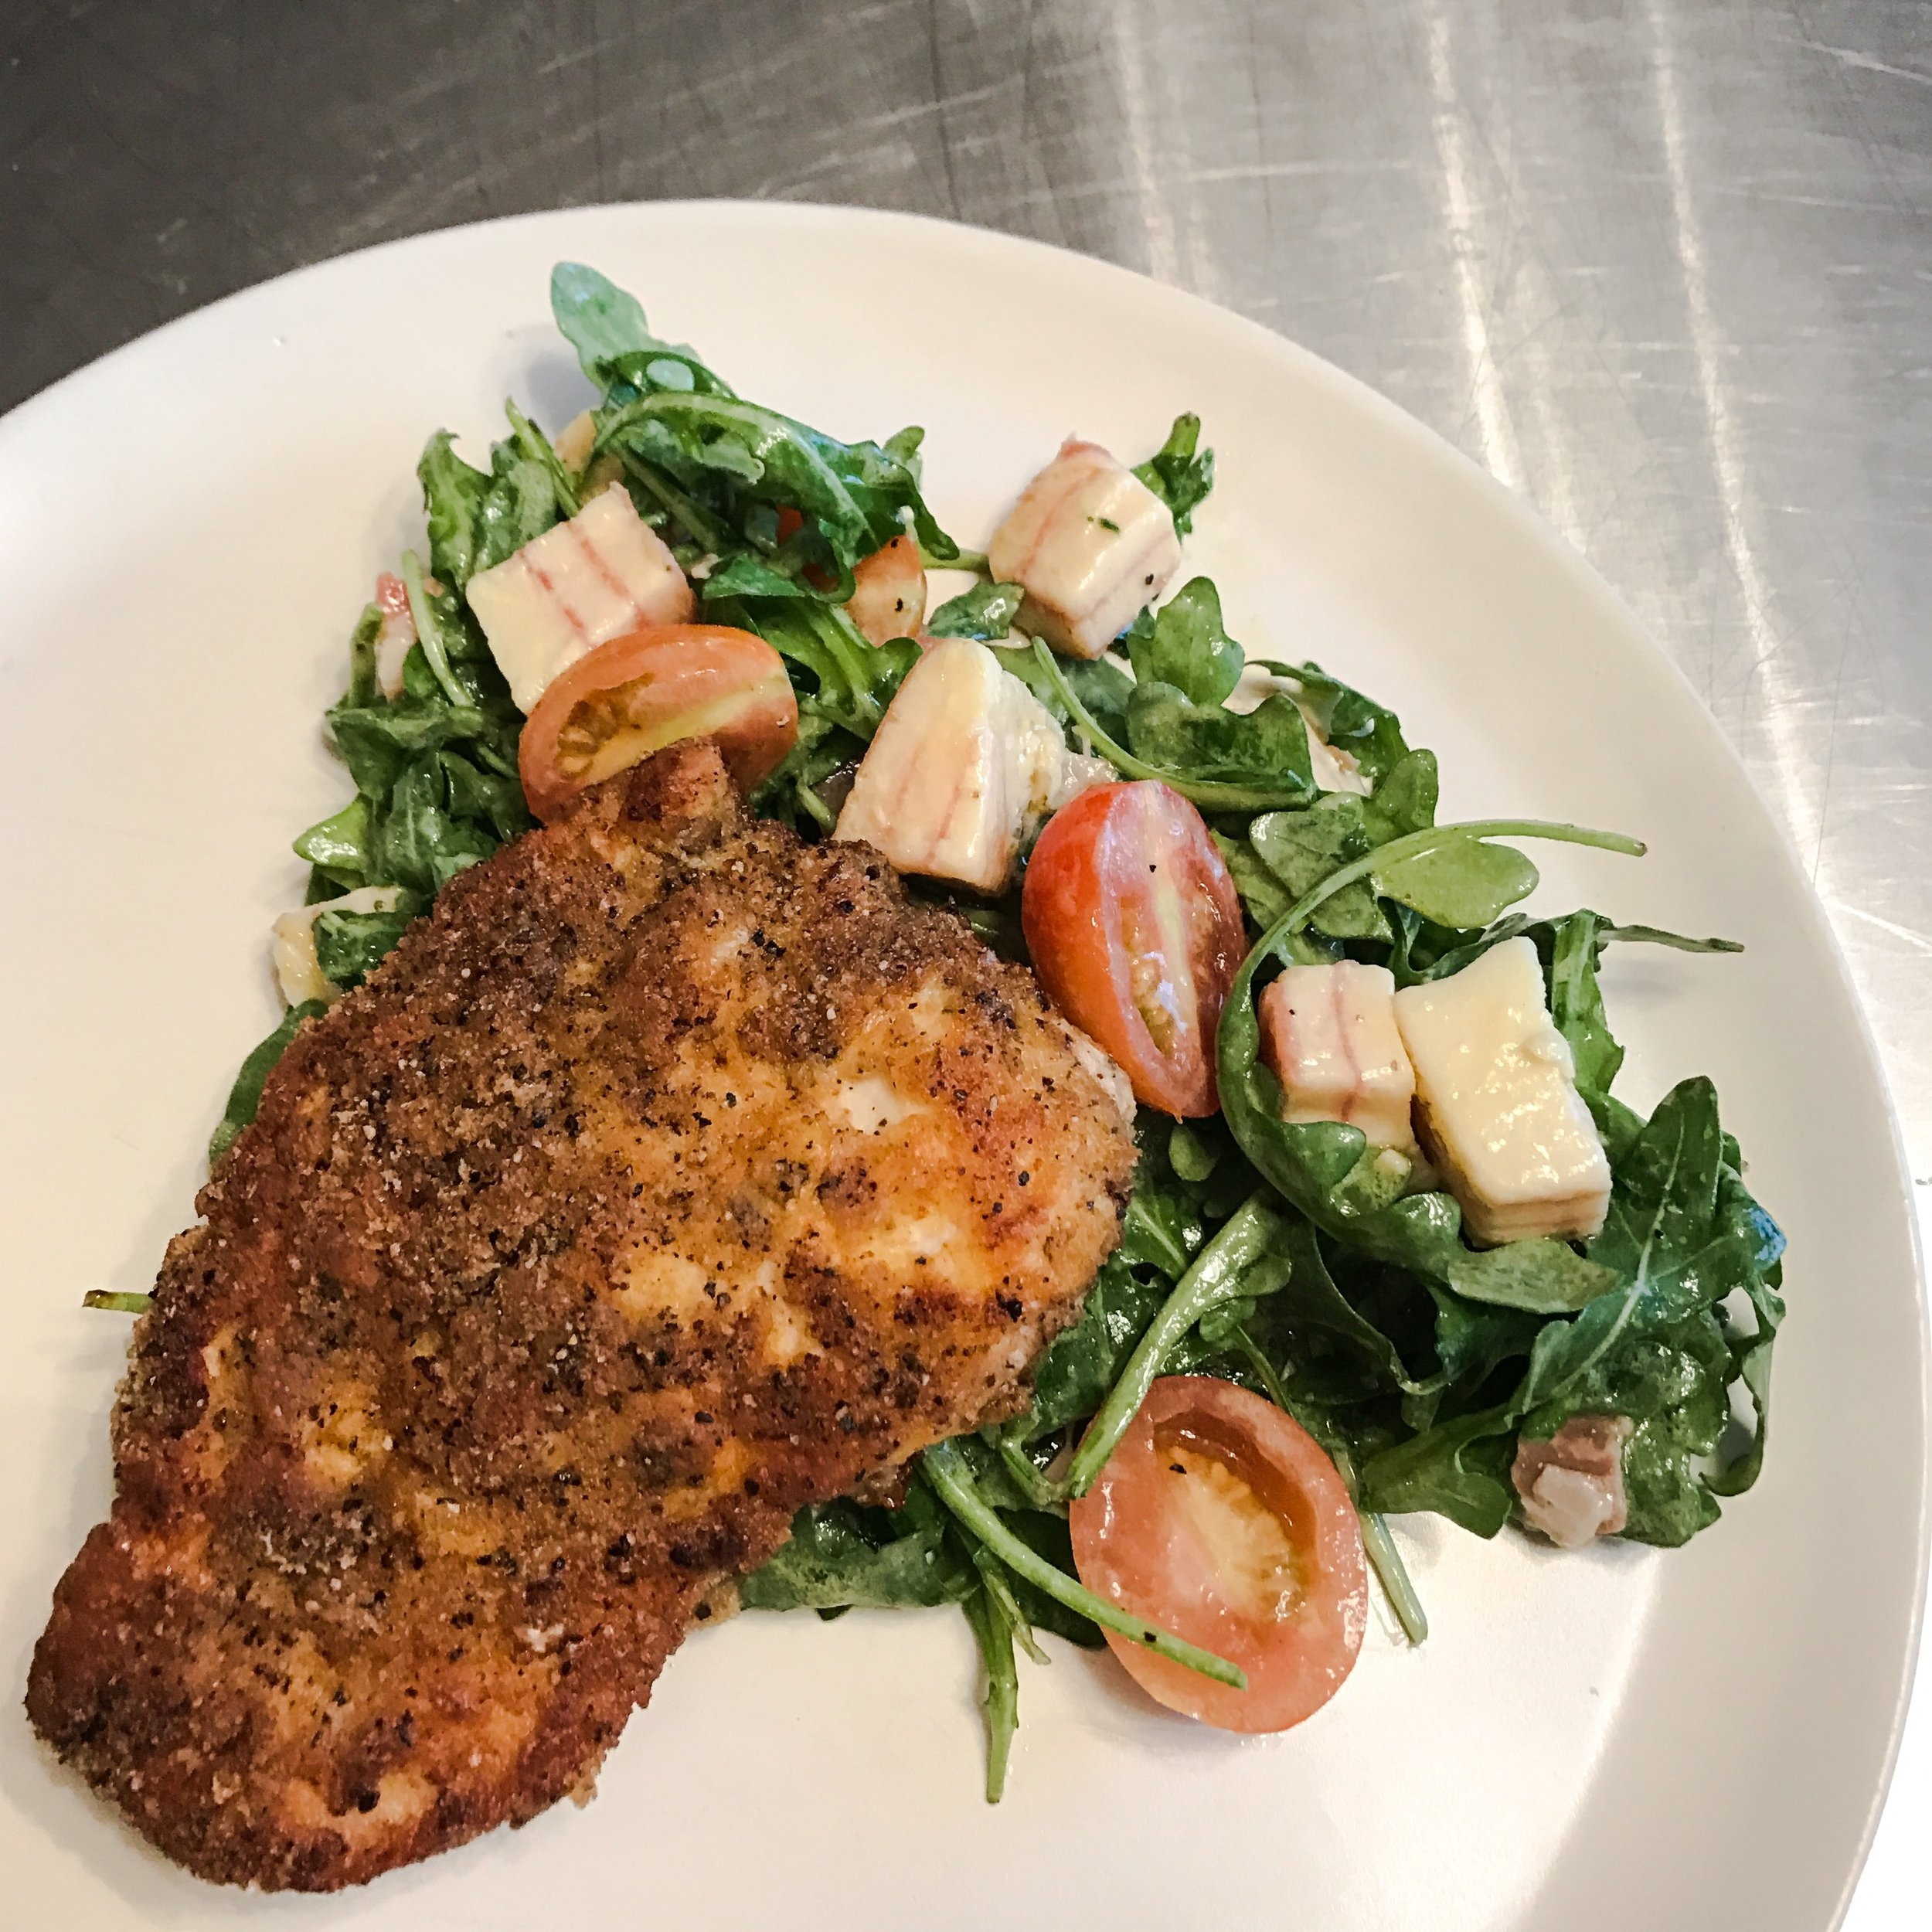 KETO RECIPE: PORK RIND CRUSTED CHICKEN WITH ARUGULA SALAD by Jen Fisch via Keto In The City